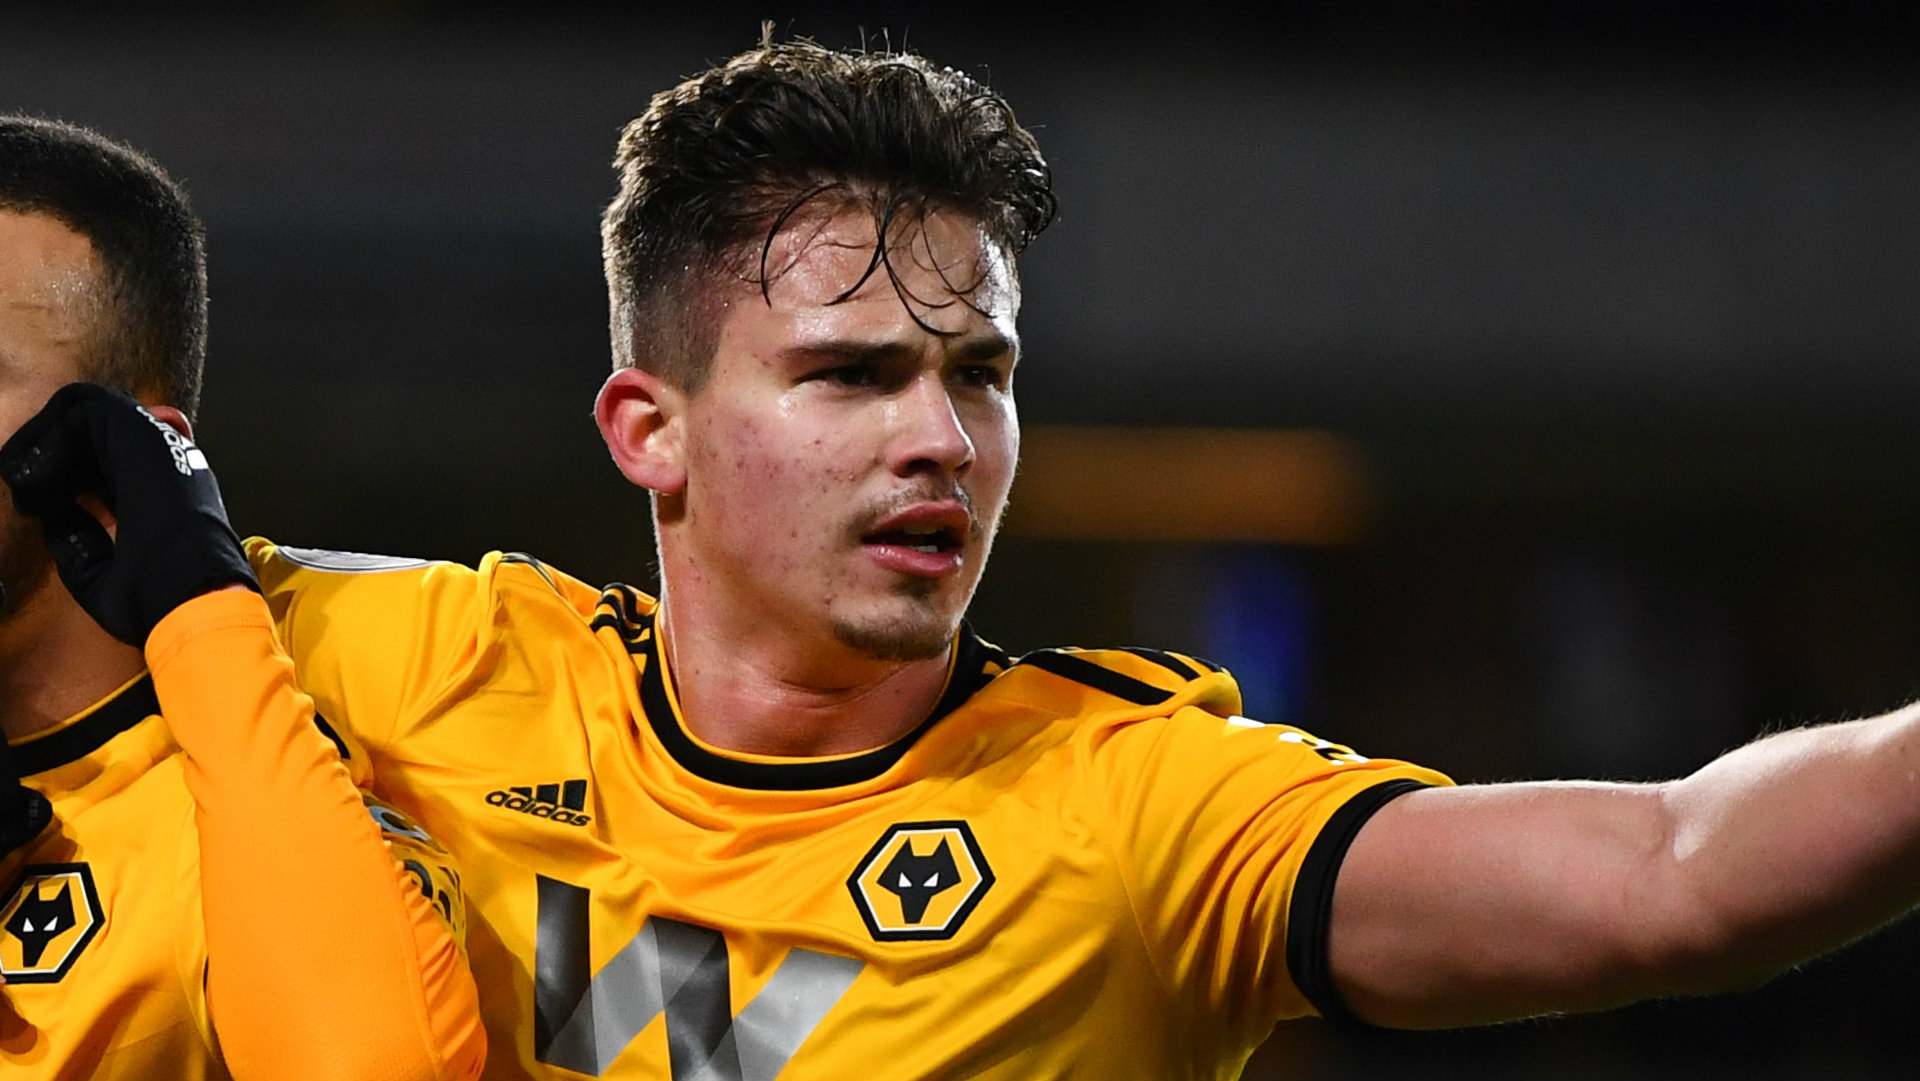 Leander Dendoncker Wolves Premier League 2018-19